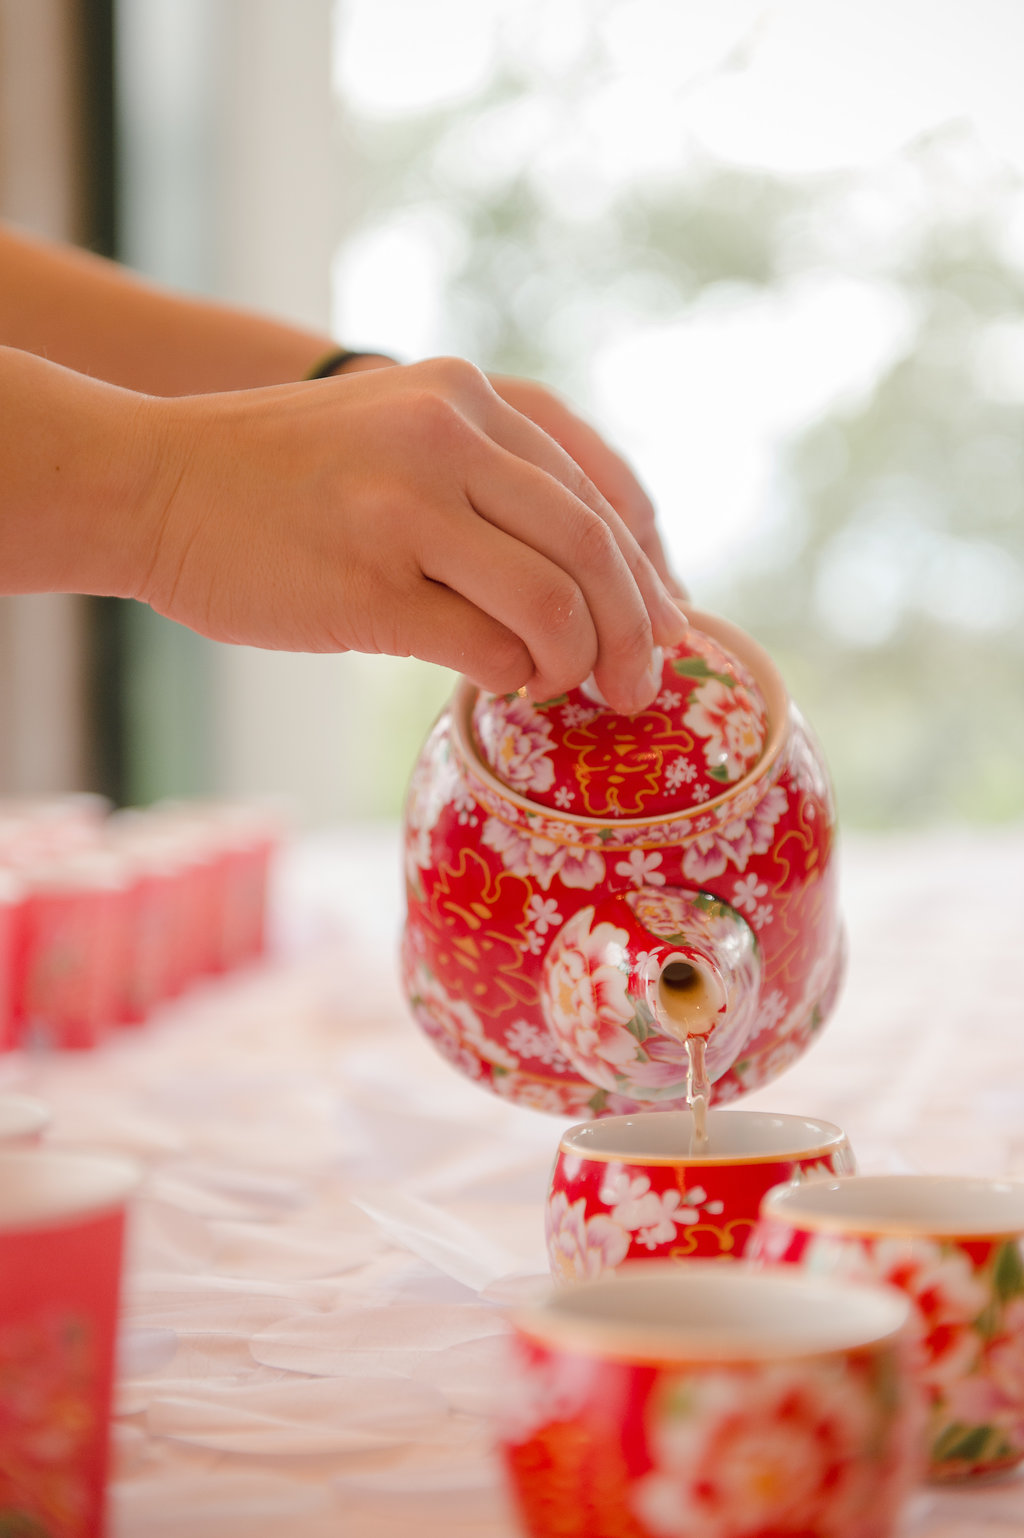 After the wedding ceremony, the couple participated in a Chinese tea ceremony.